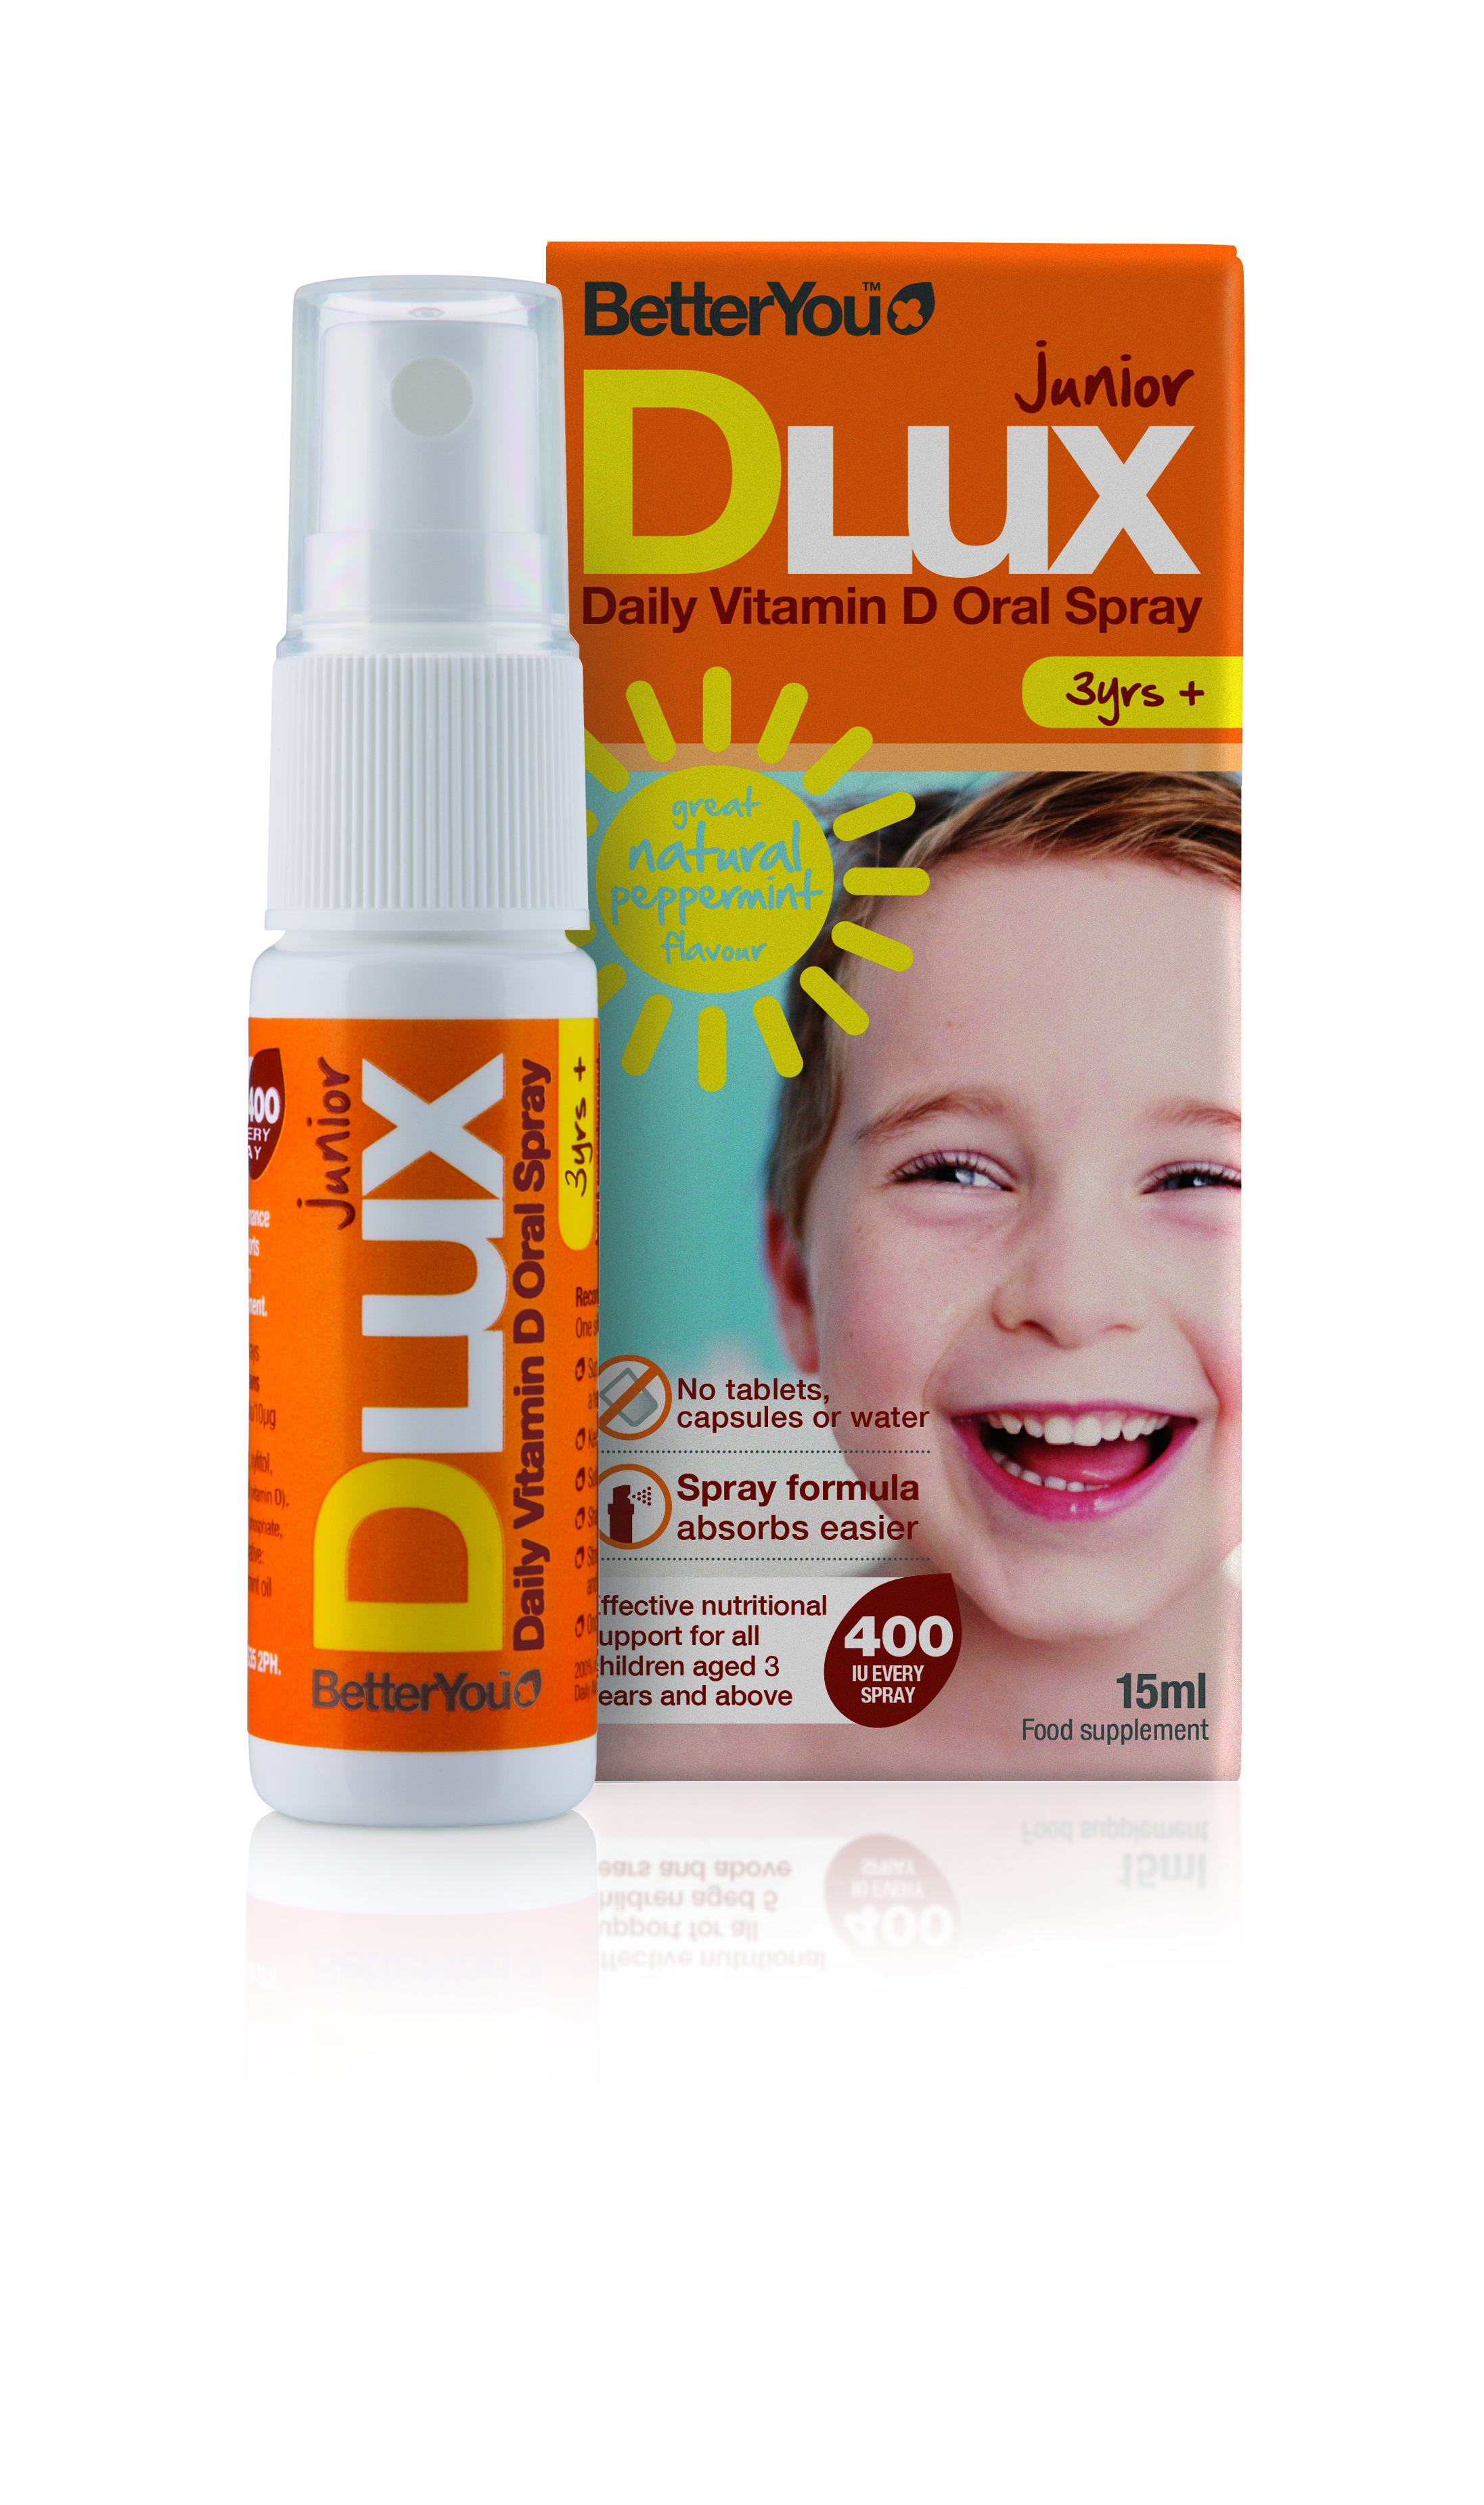 BetterYou Dlux Junior Vitamin D oral spray 400 IU 15 ml